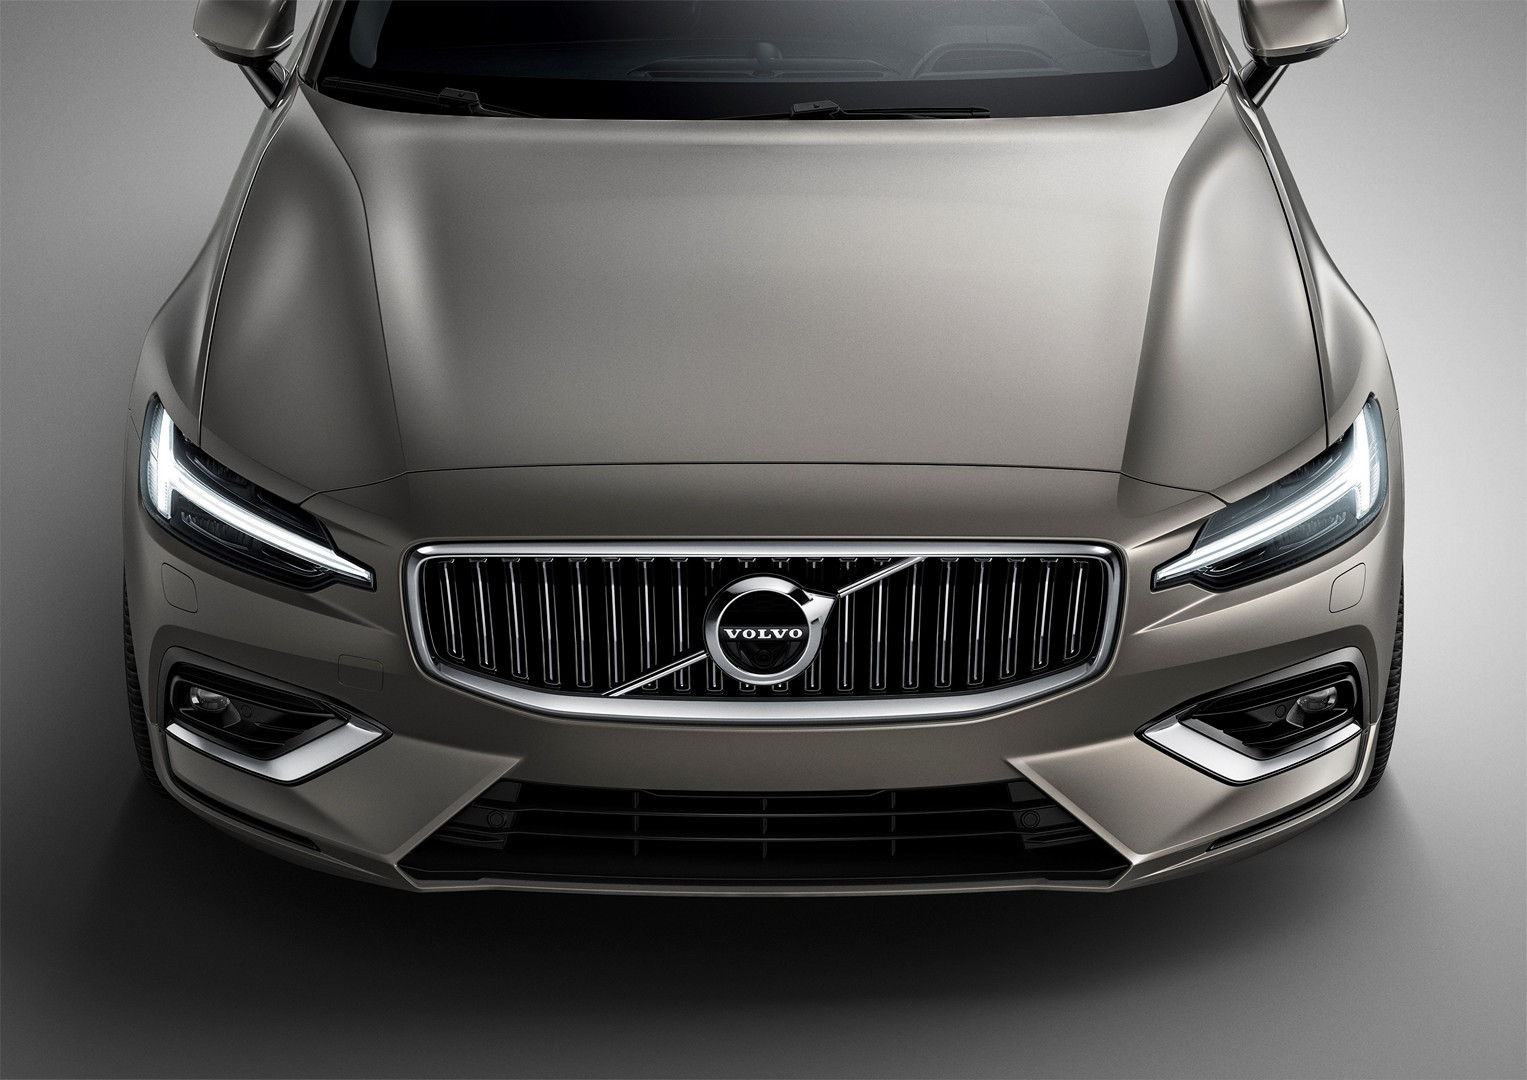 Hakan Samuelsson Explains That The Future Of Volvo Is Electric And We Will No Longer Develop A New Generation Sel Engines